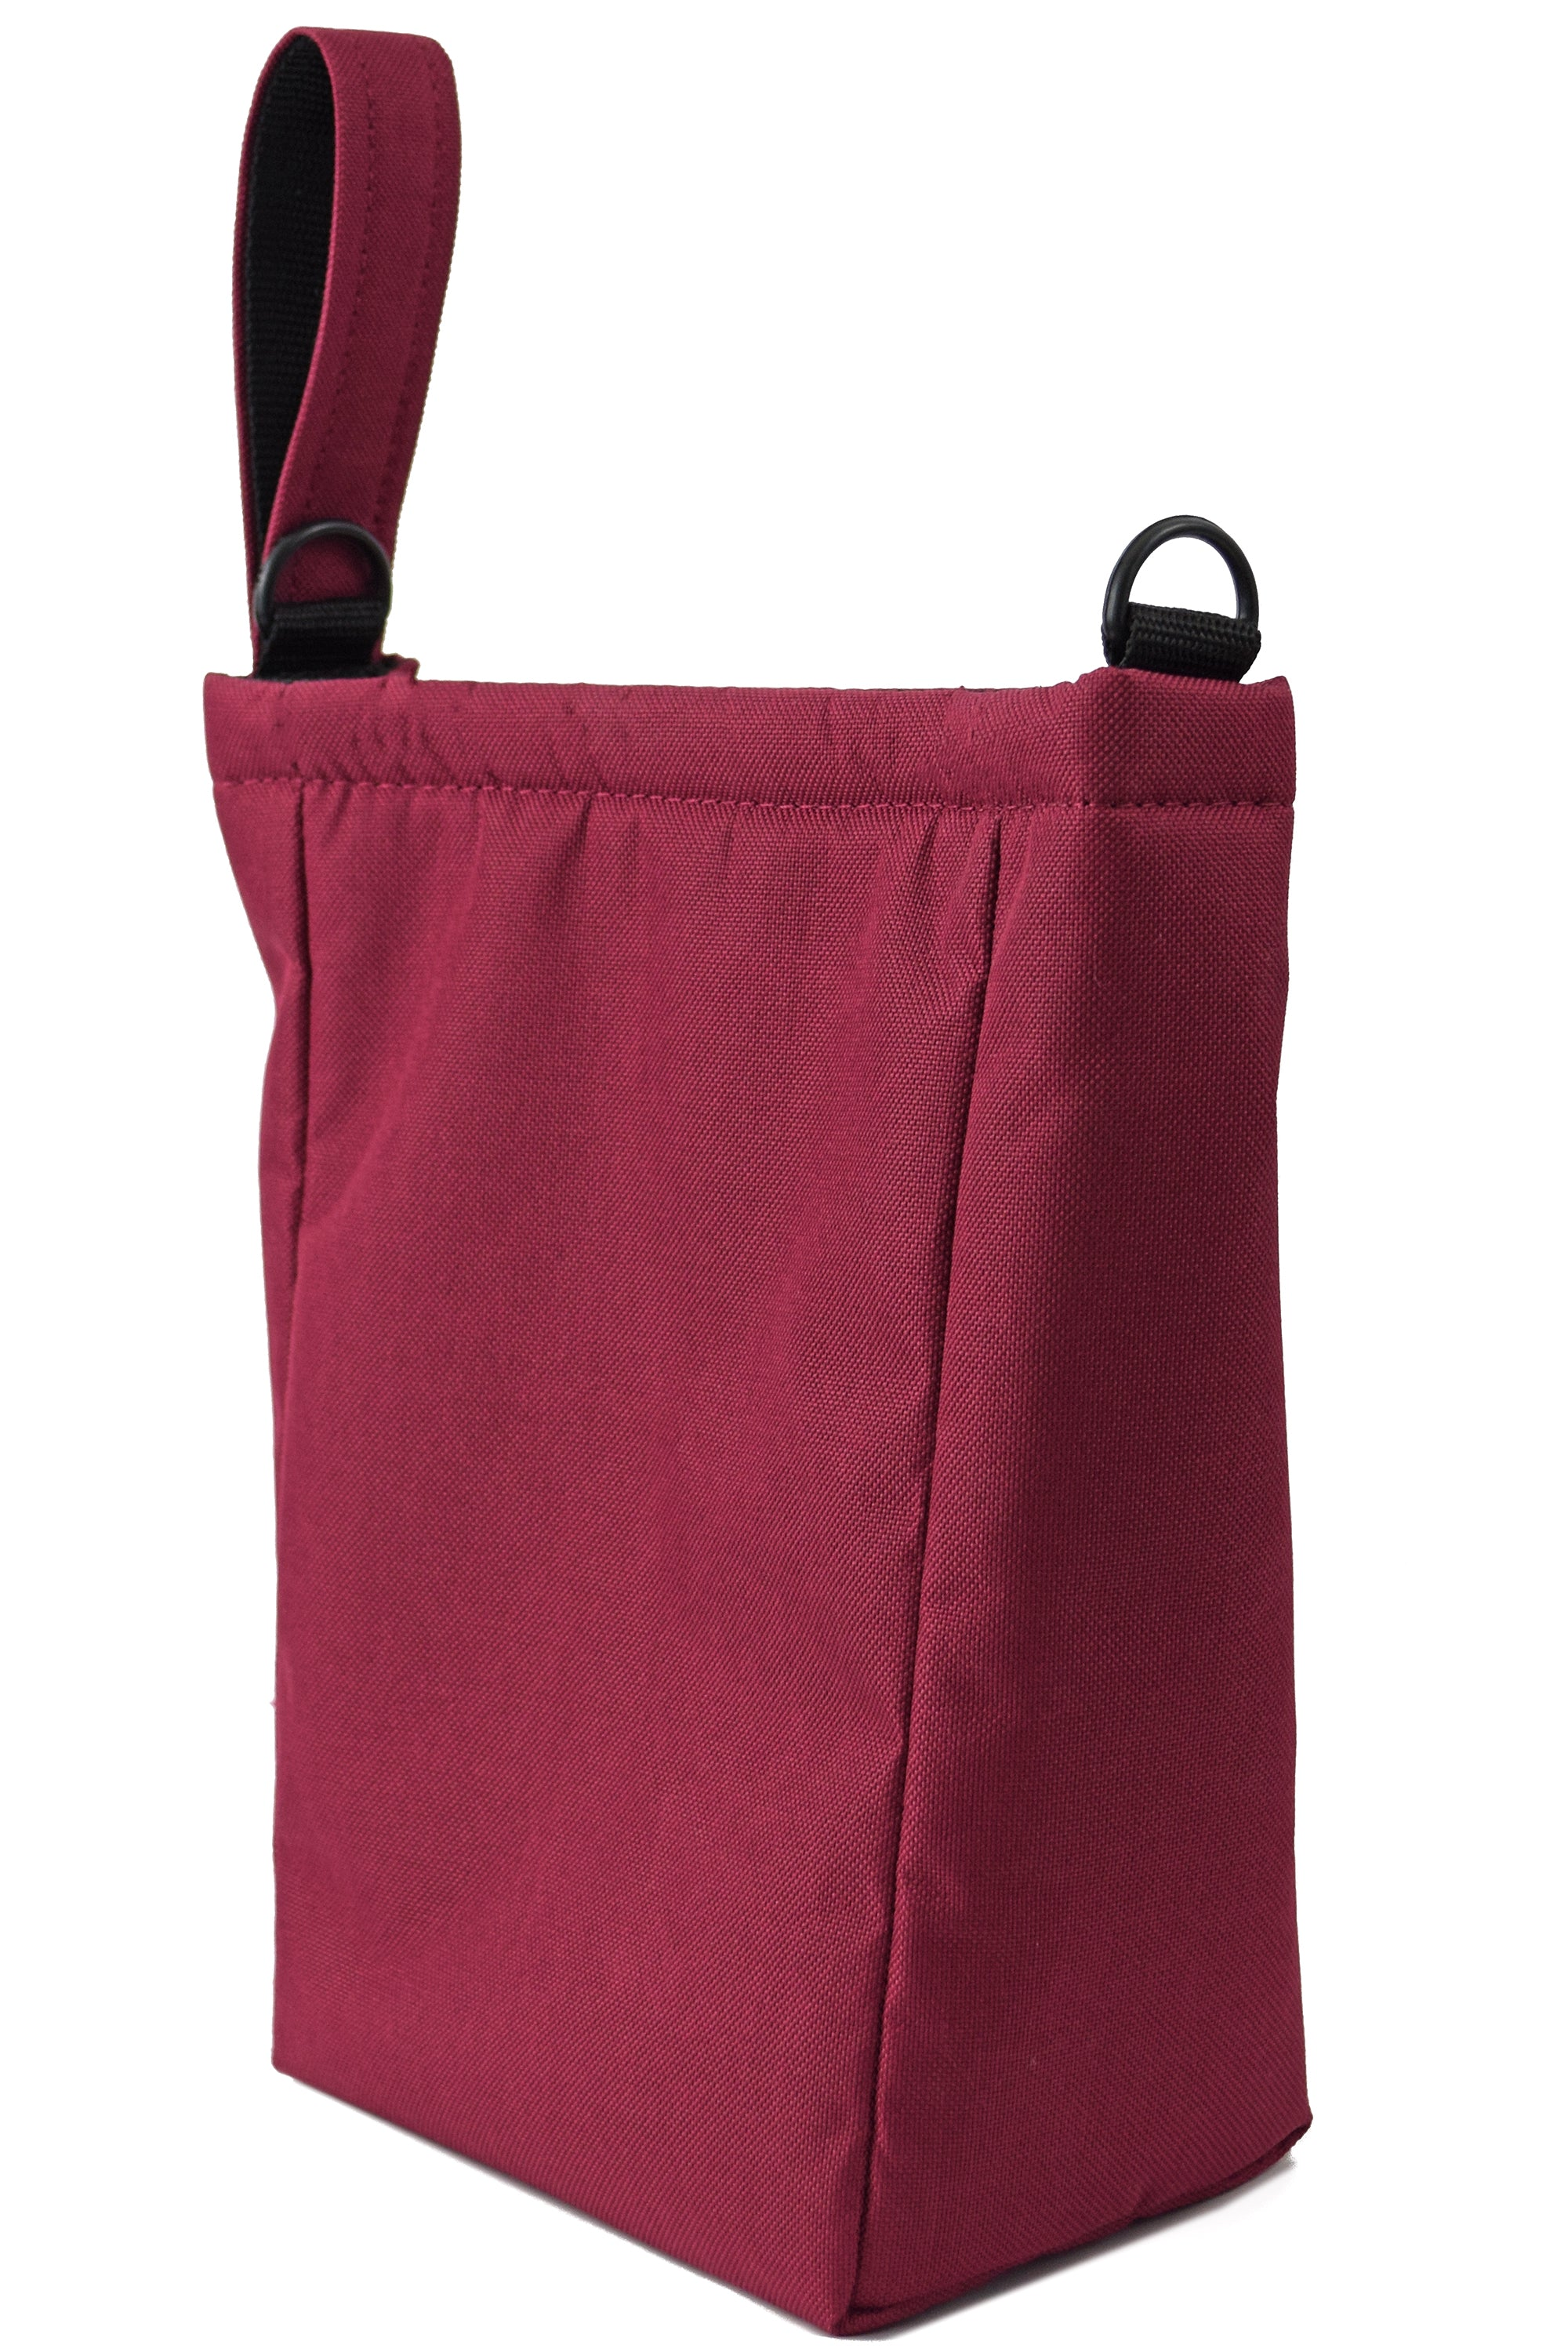 Goodstart Jones Utility grab bag storage bag wine